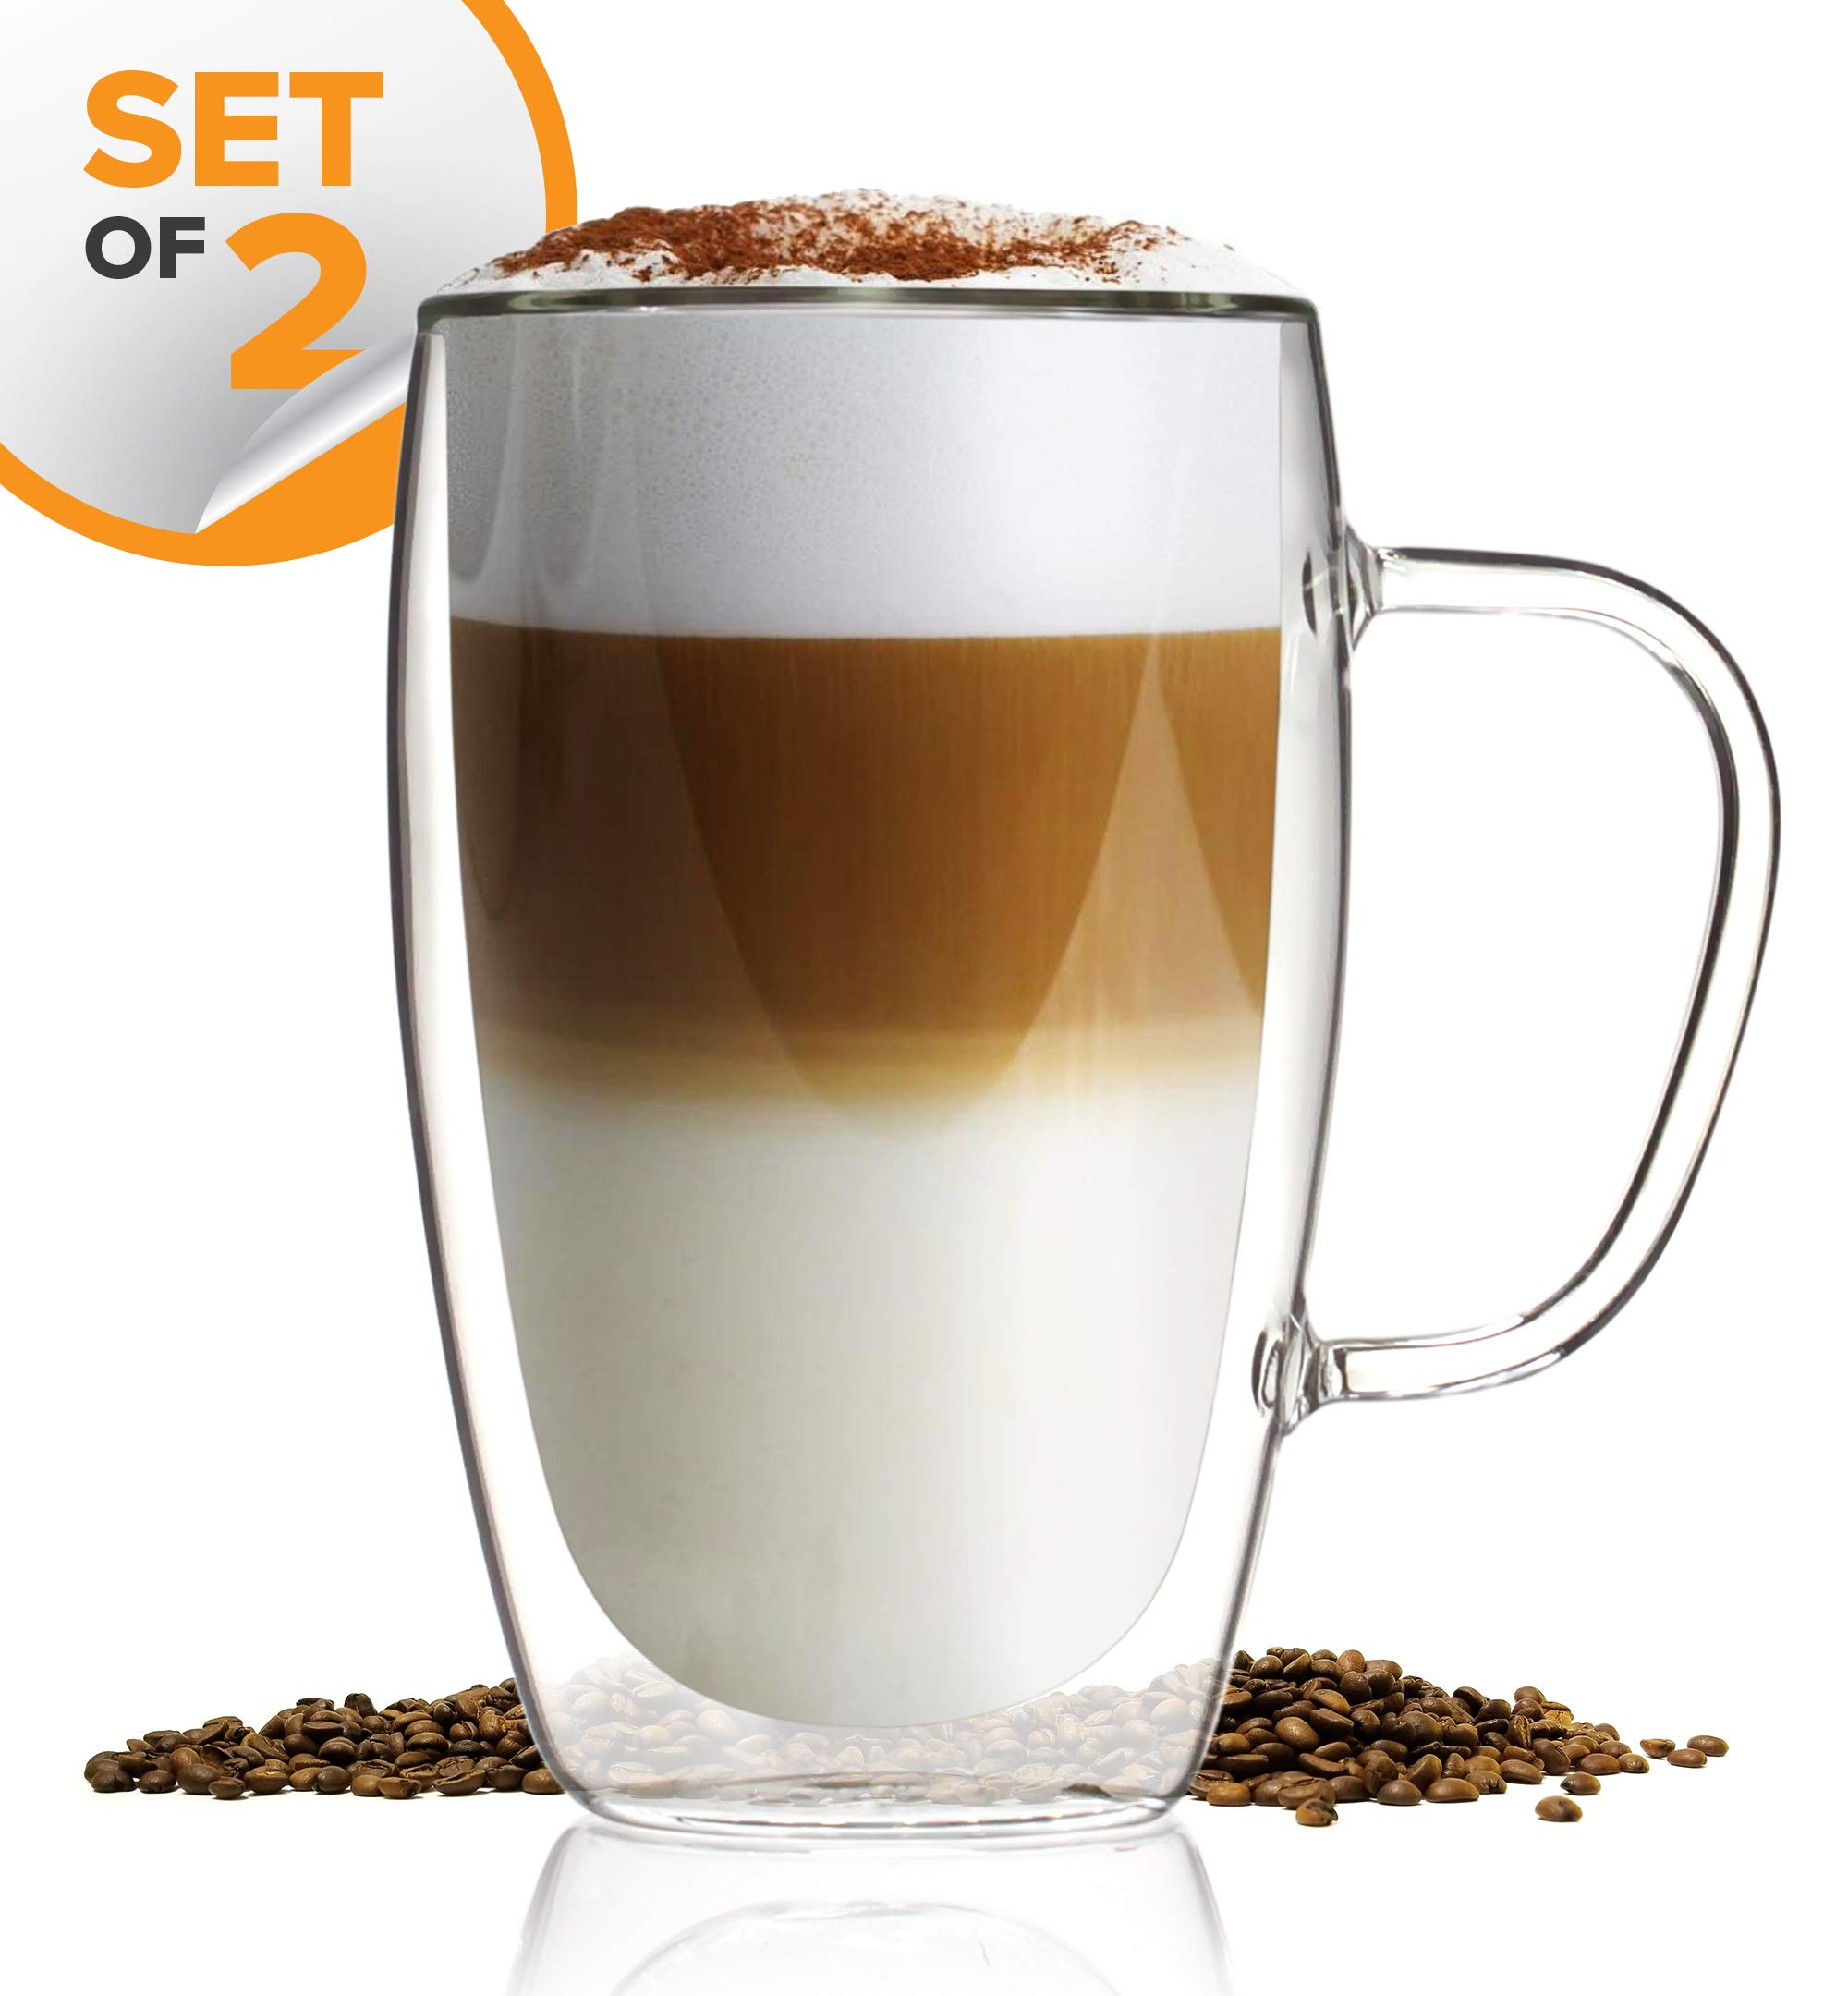 Latte Cappuccino Espresso Glassware Kitchables Coffee or Tea Glass Mugs Set of 2,15oz Double Wall Thermo Insulated Cups with Handle